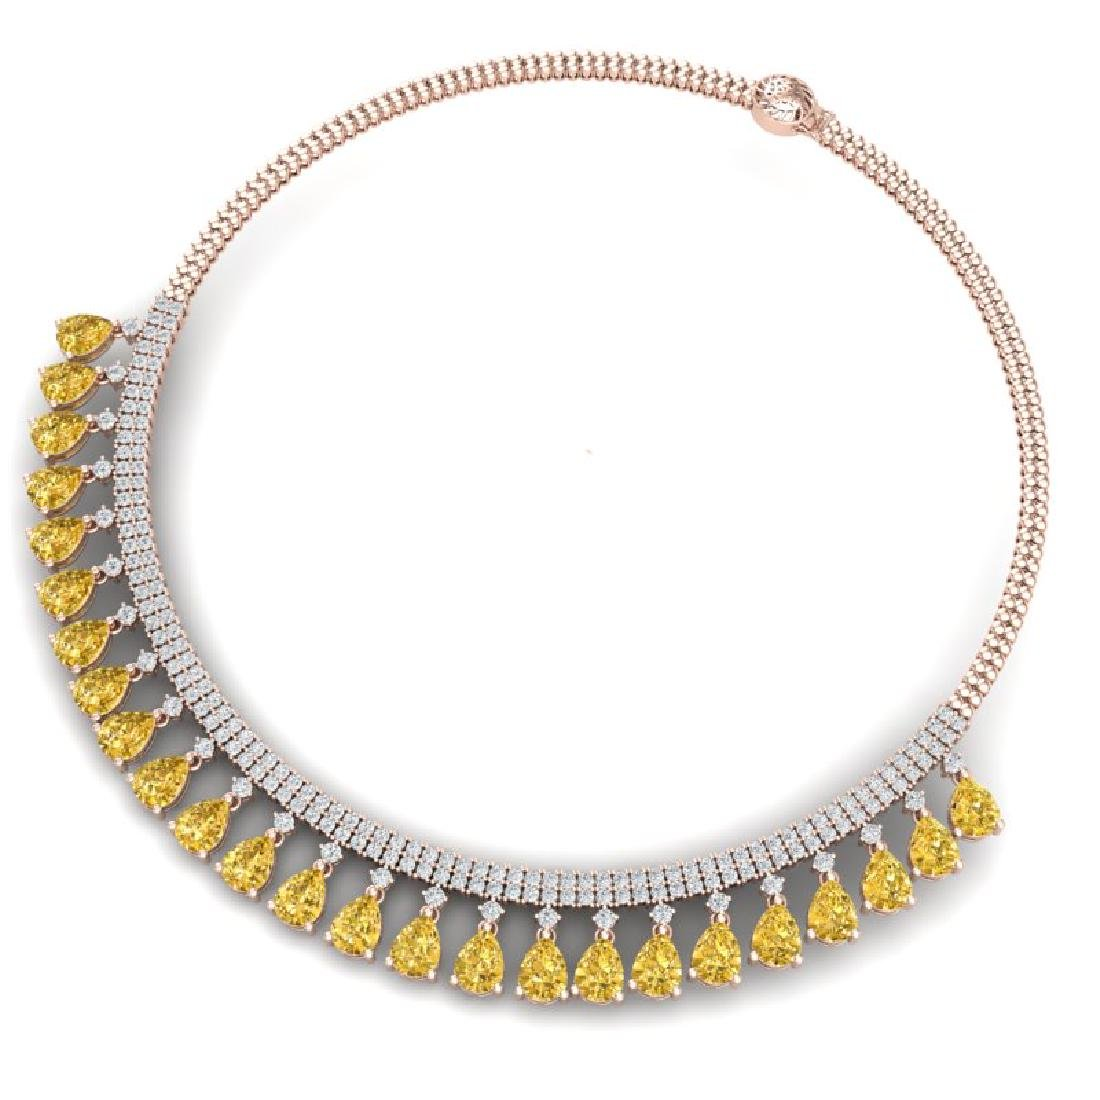 39.66 CTW Royalty Canary Citrine & VS Diamond Necklace - 3